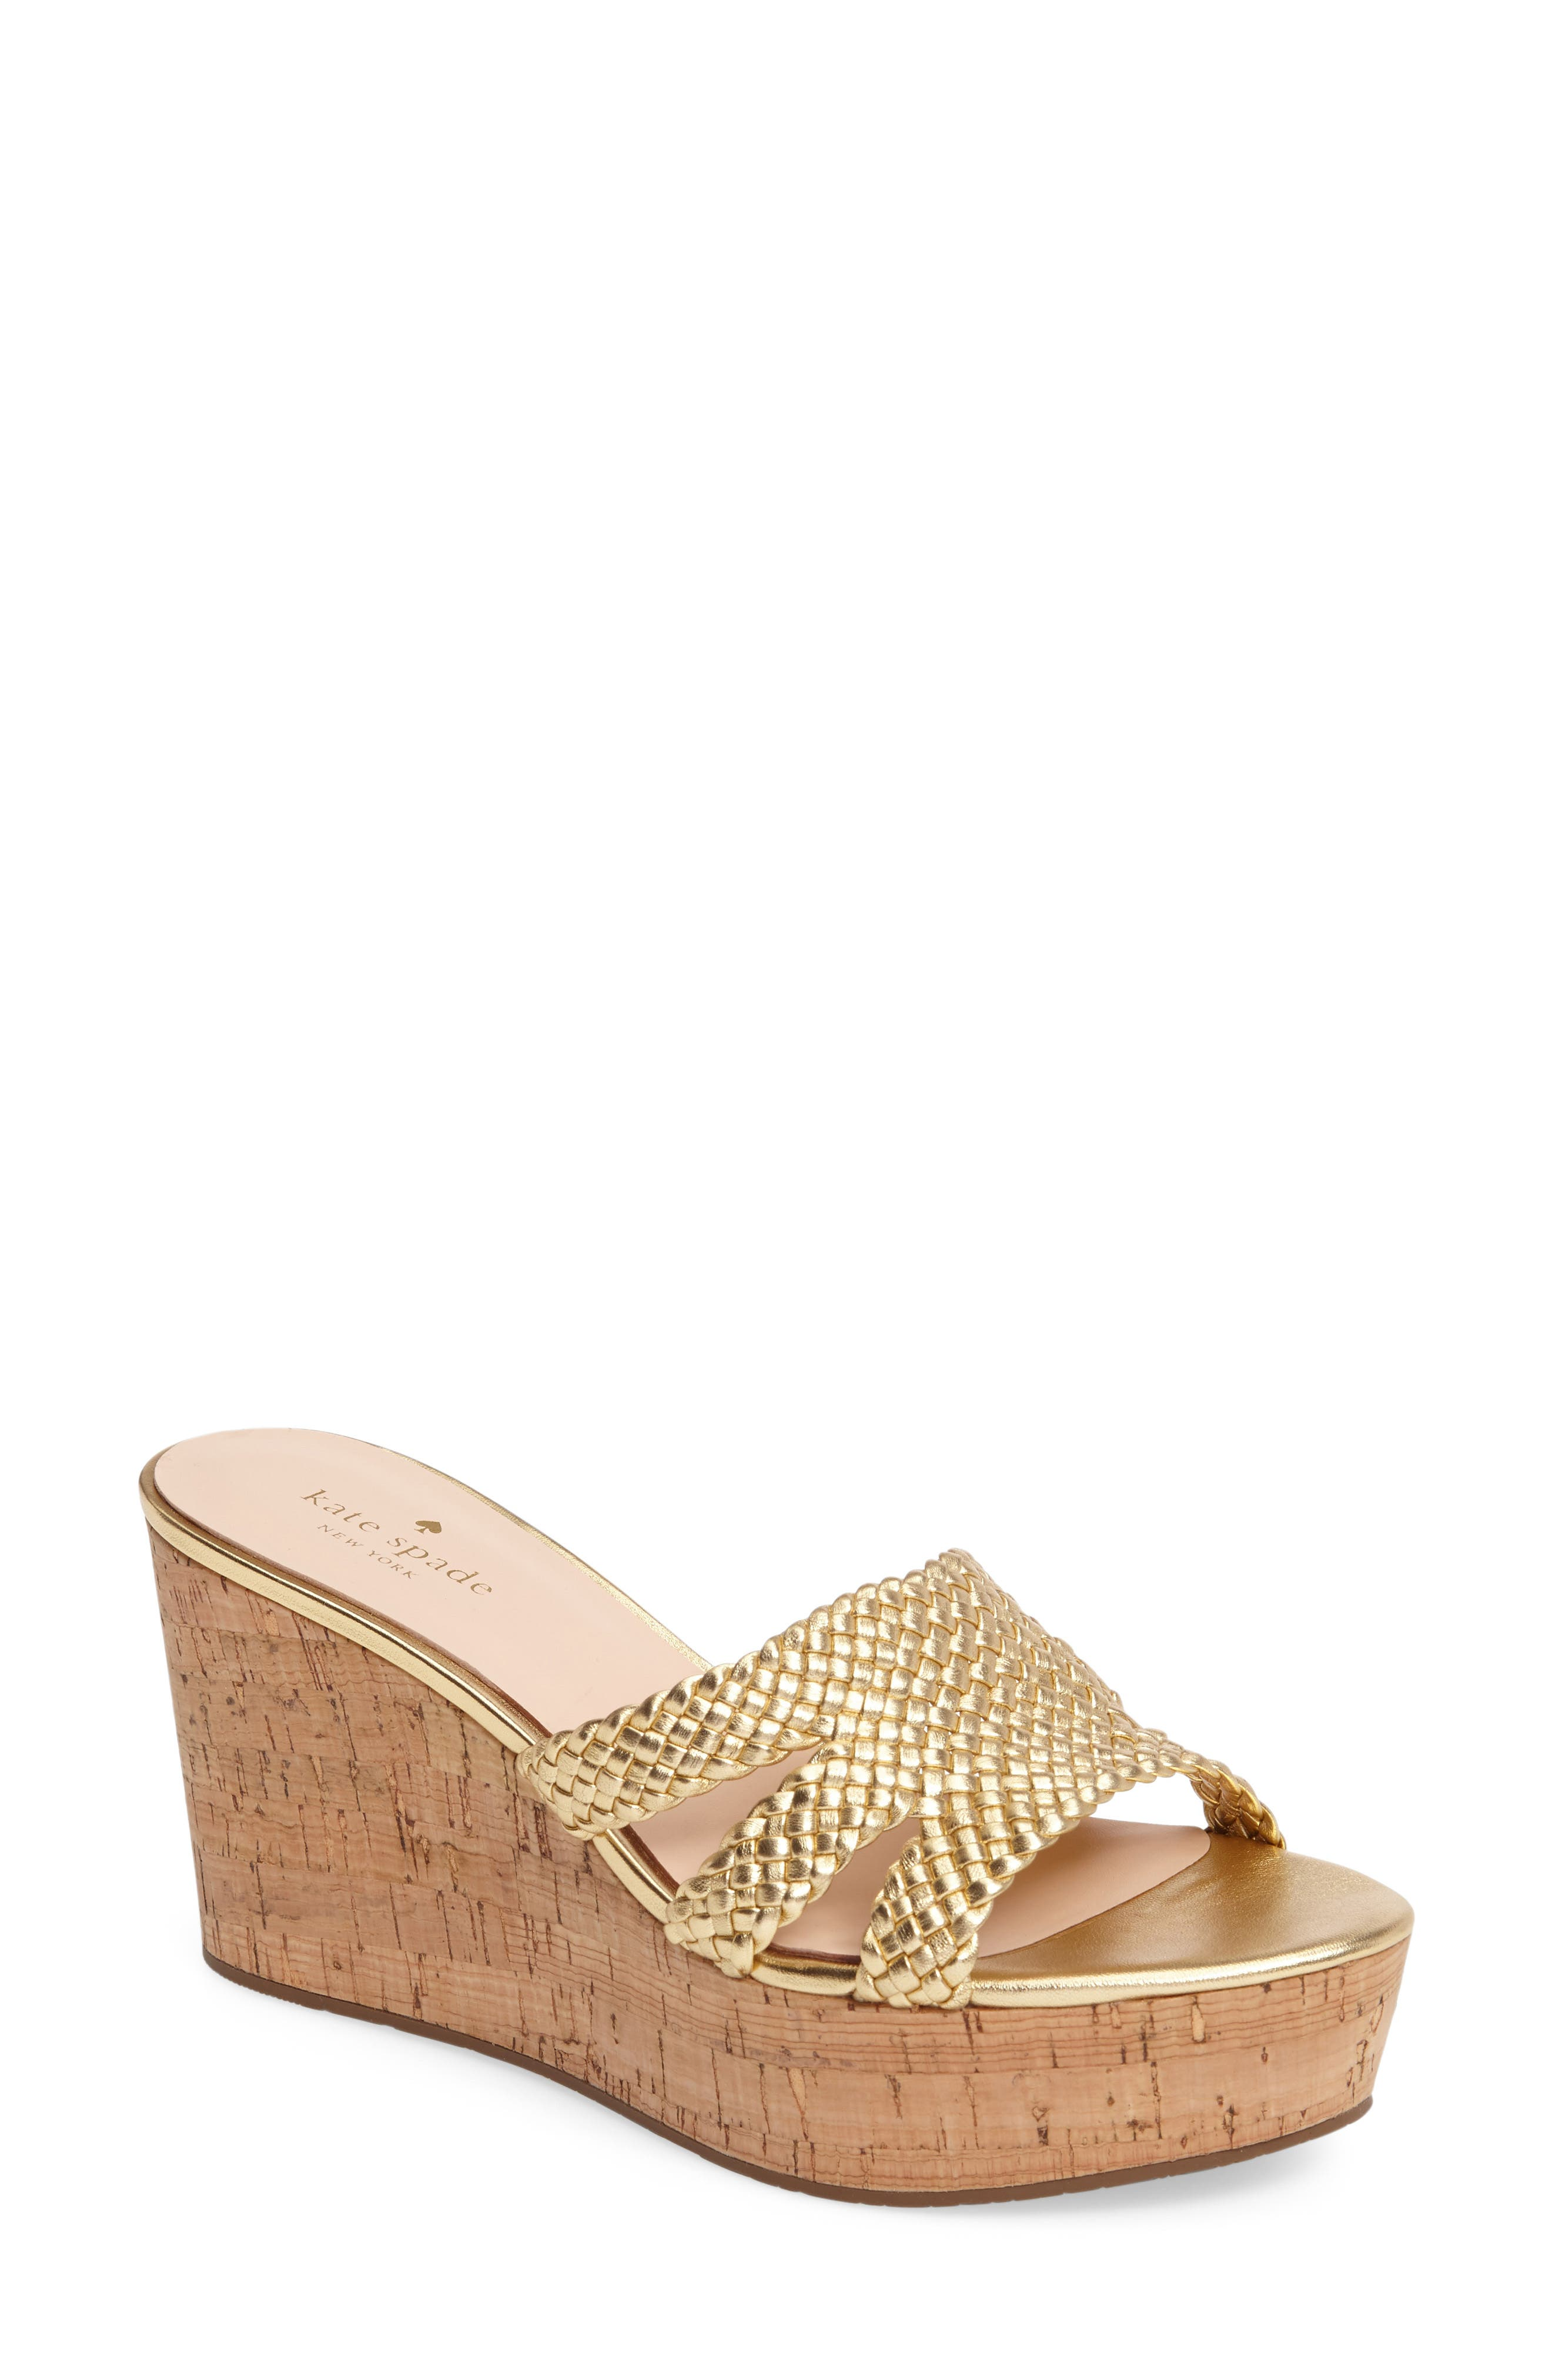 kate spade new york tarvela wedge sandal (Women)